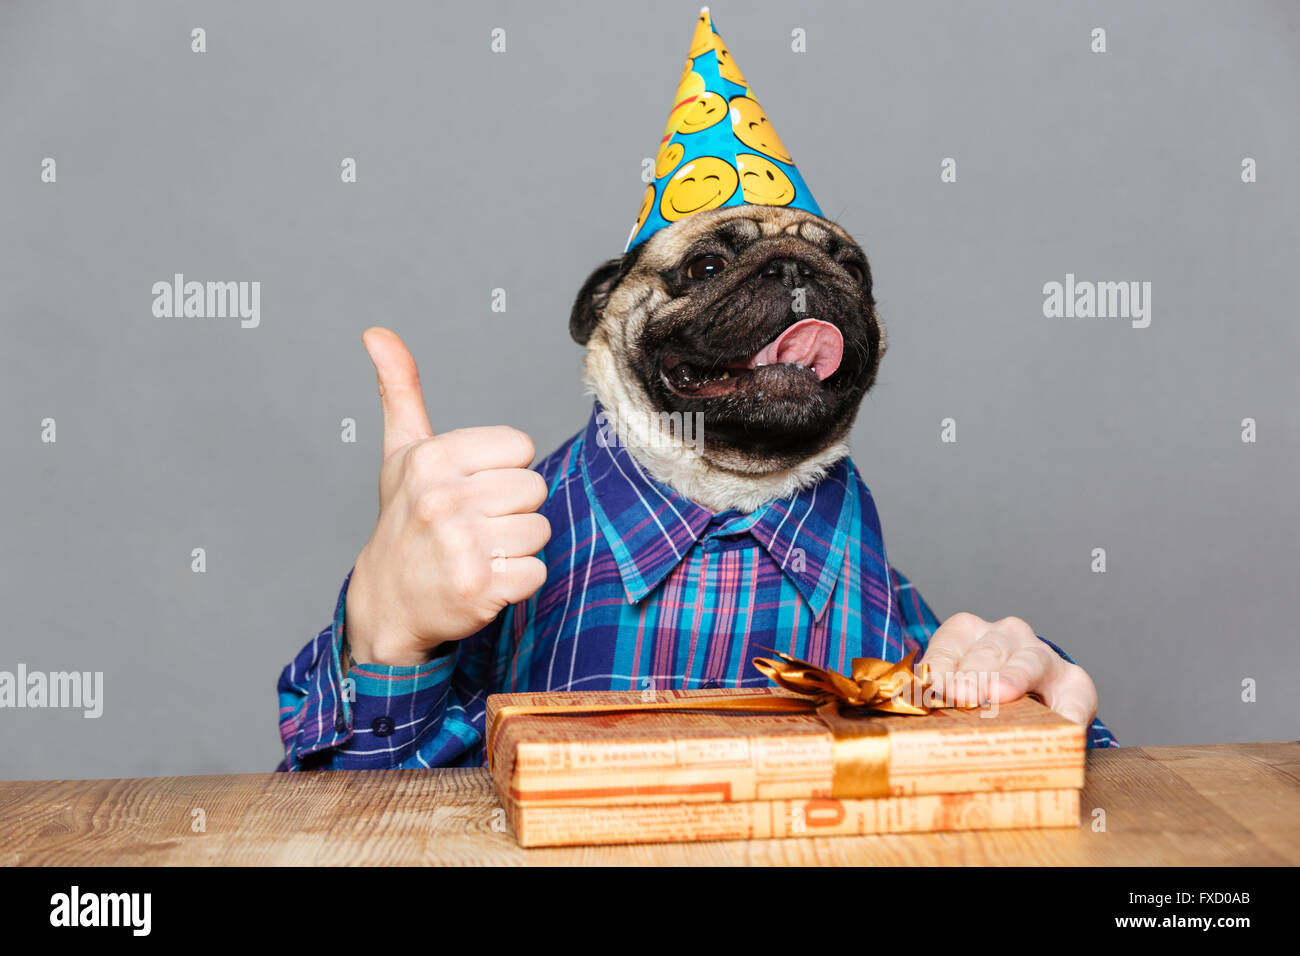 Joyful Pug Dog With Man Hands In Checkered Shirt And Birthday Hat Gift Showing Thumbs Up Over Grey Background